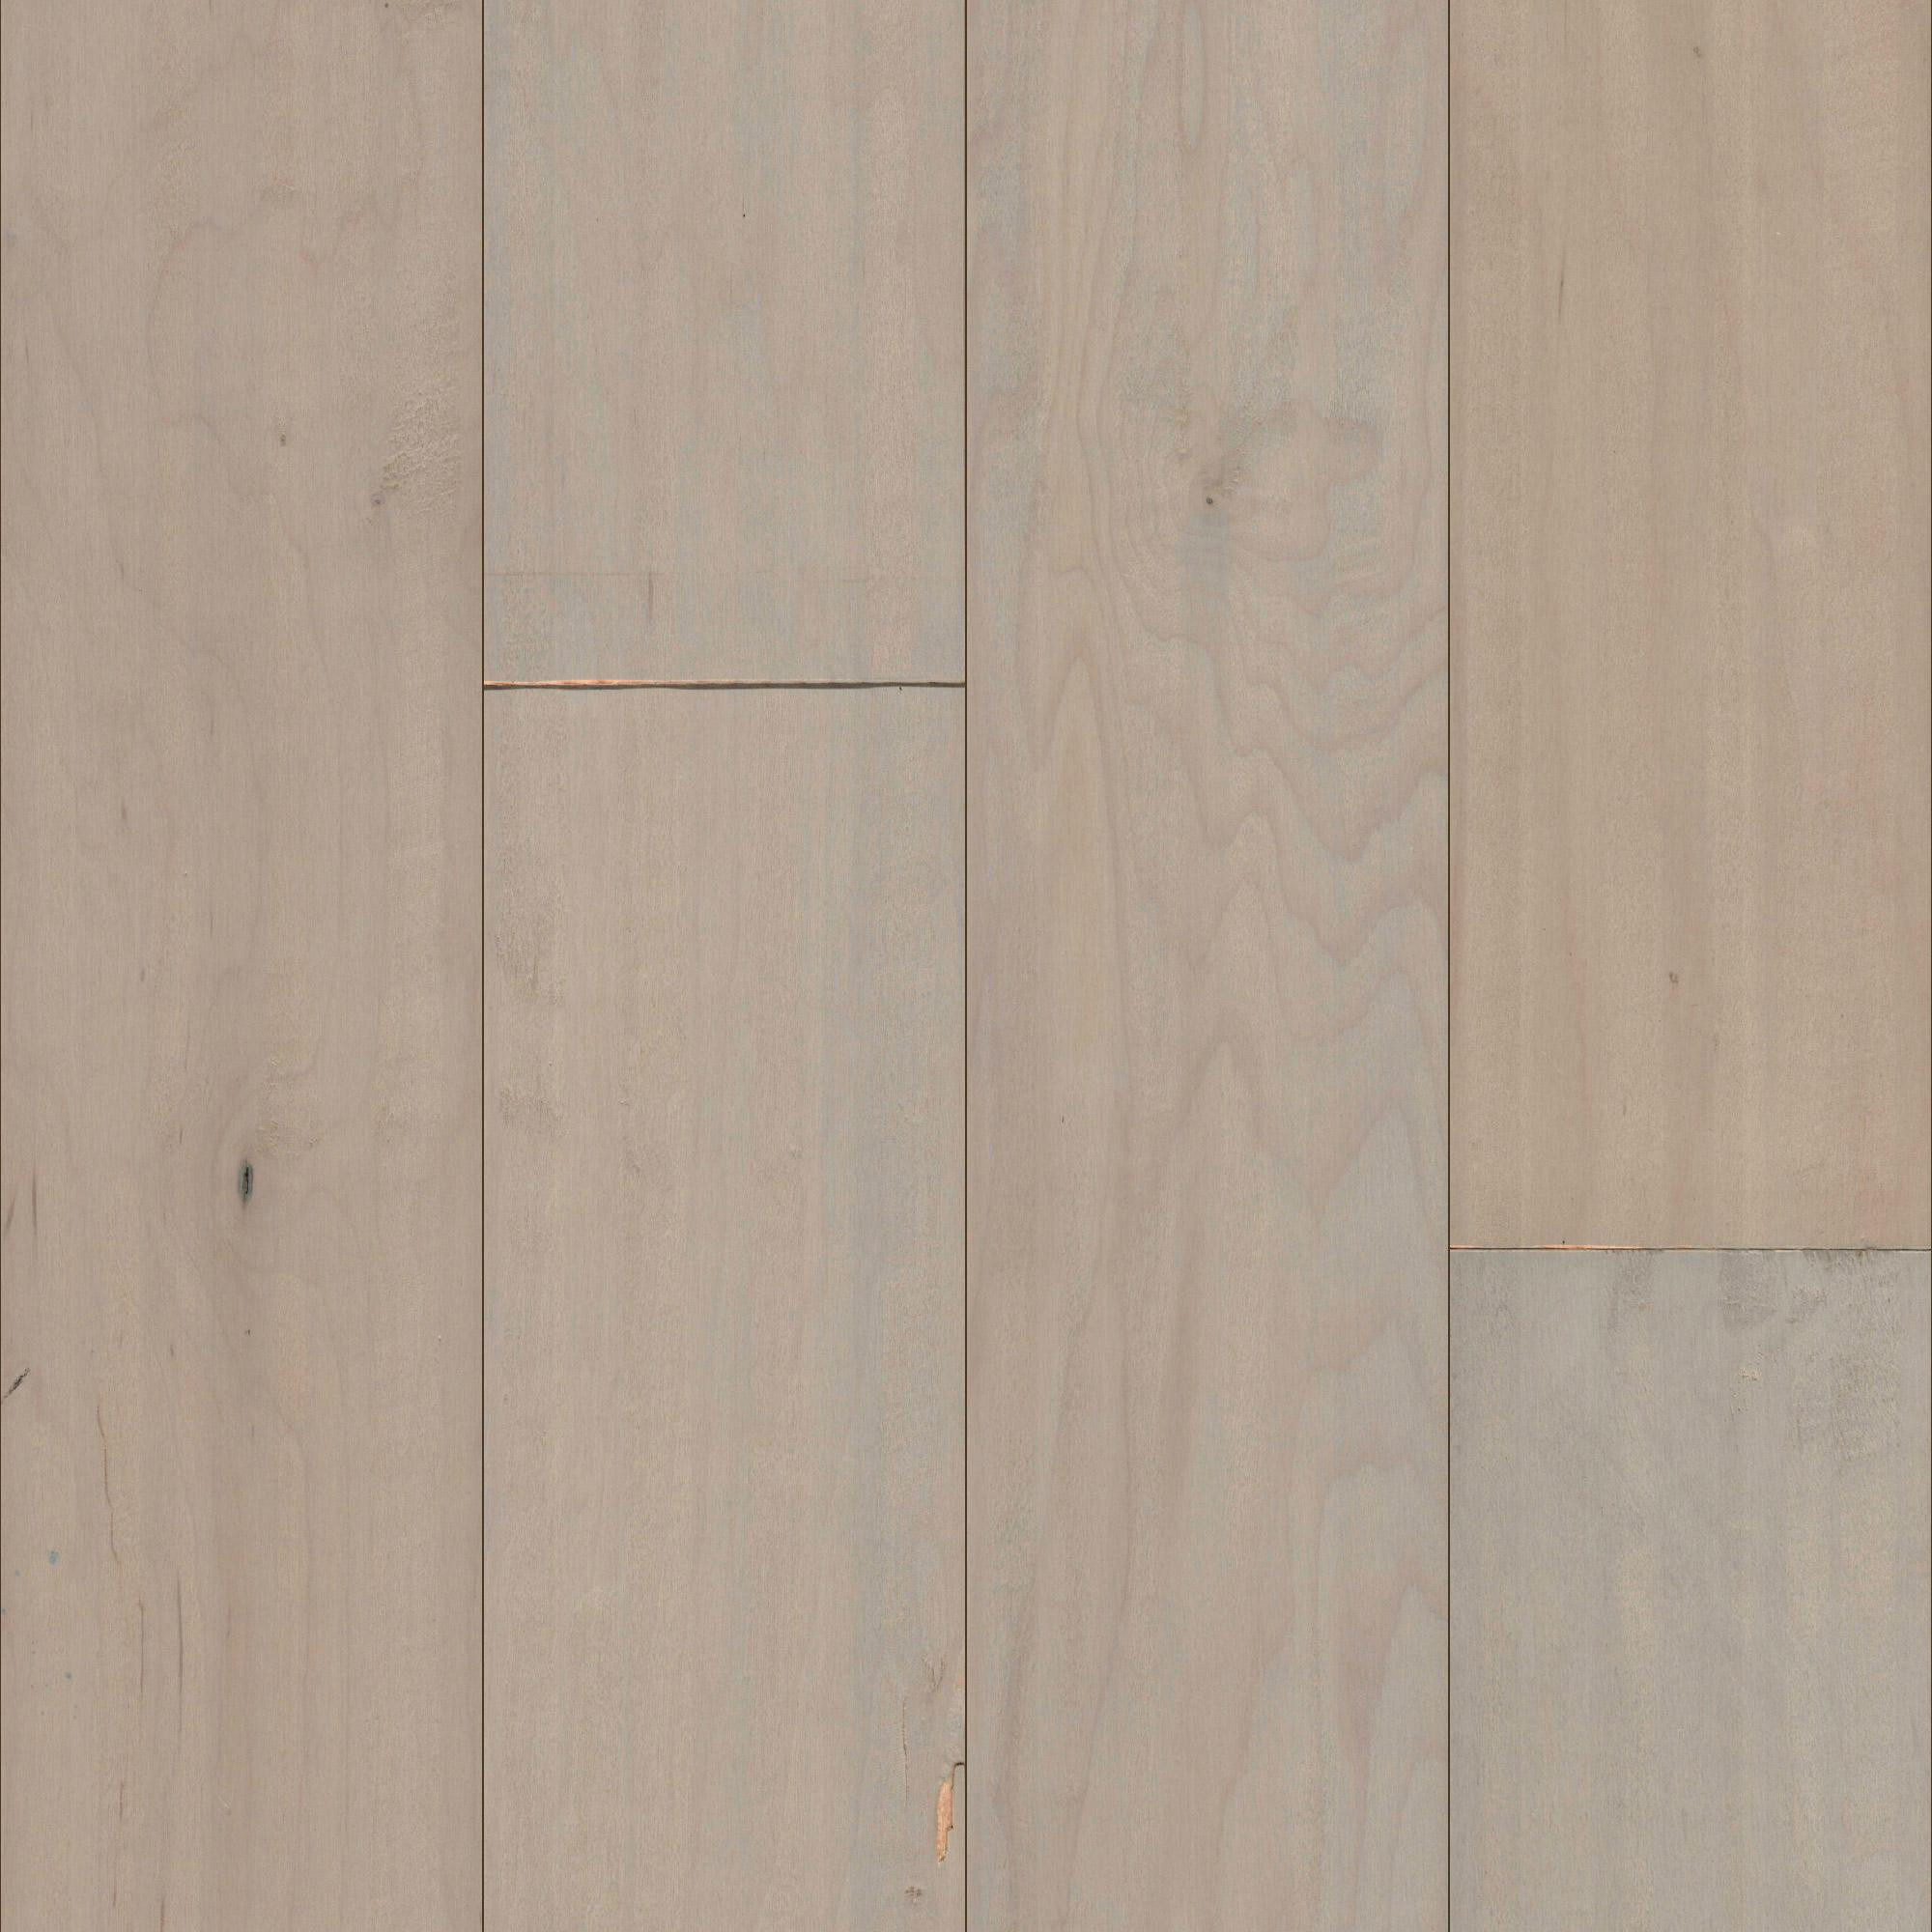 Self Adhesive Hardwood Flooring Of Mullican Lincolnshire Sculpted Maple Frost 5 Engineered Hardwood Inside Mullican Lincolnshire Sculpted Maple Frost 5 Engineered Hardwood Flooring